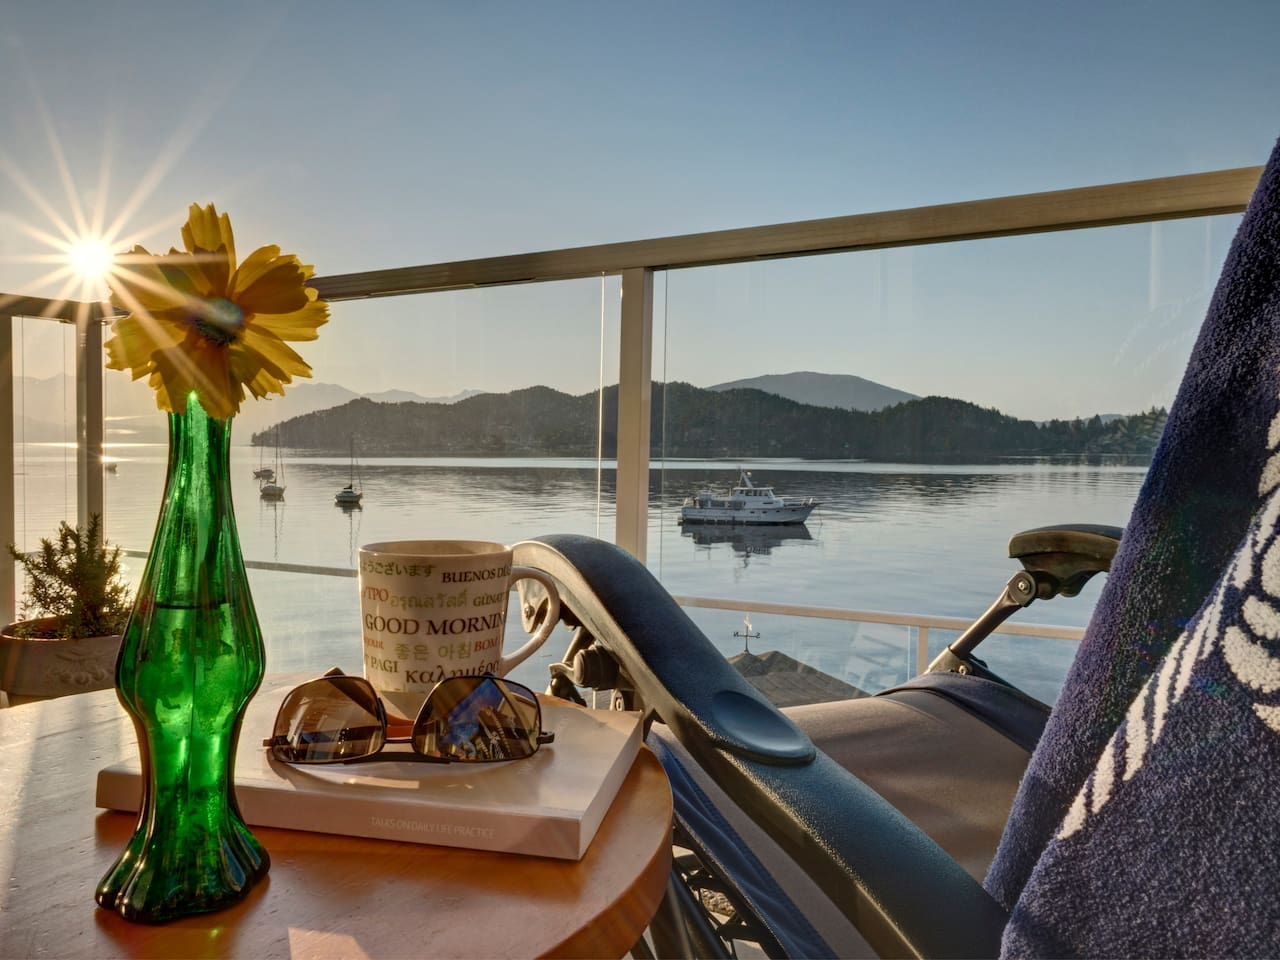 Peaceful, inviting, relaxing... when you want to get away from it all and be inspired by a fresh view on life. No other listing in Gibsons offers all of this at this price-point.